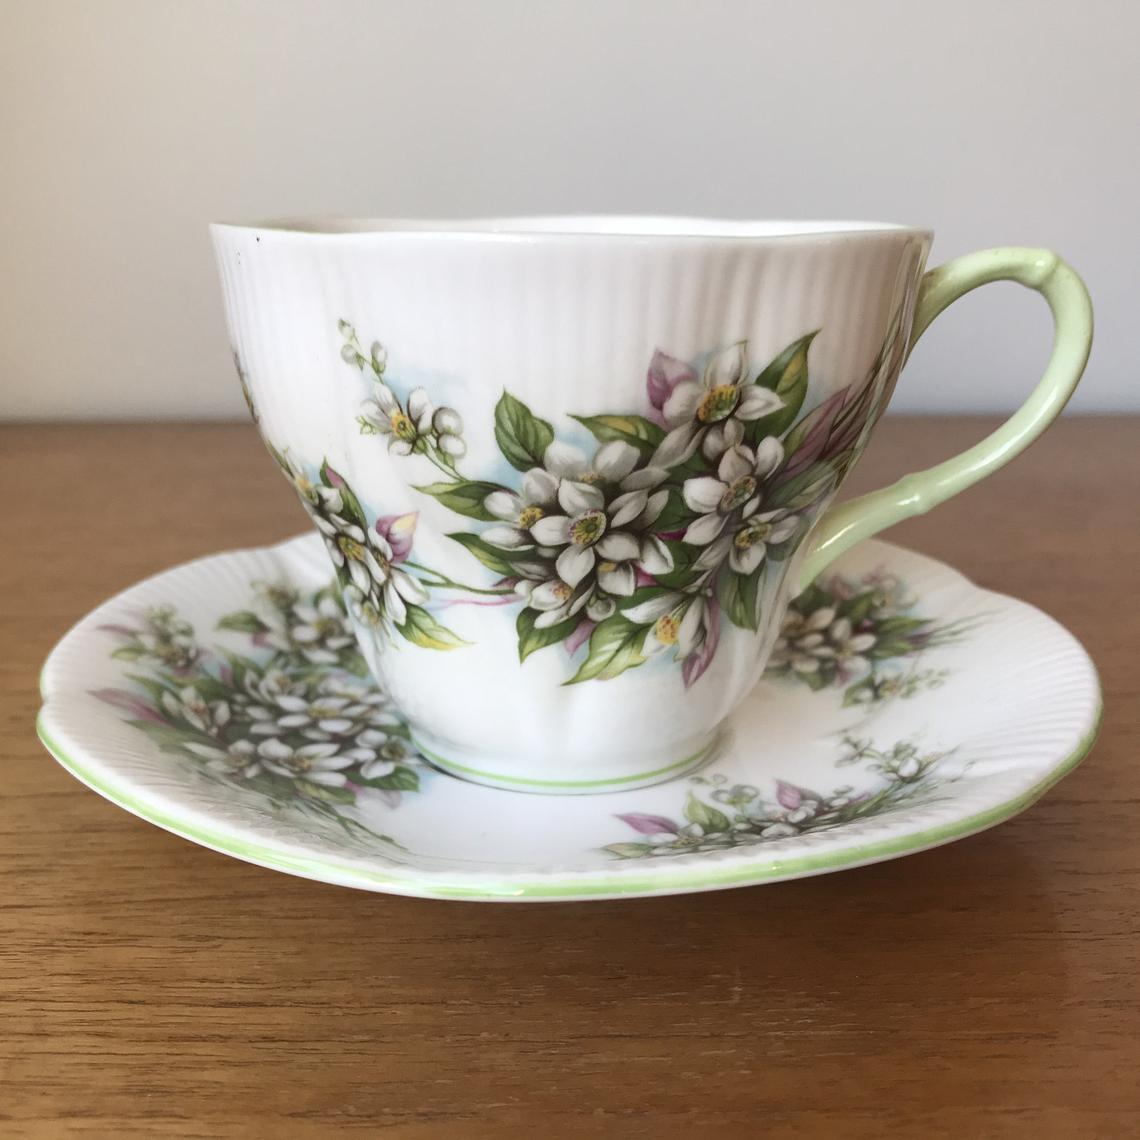 Royal Albert Orange Blossom Blossom Time Series, Floral Teacup and Saucer, English Tea Cup and Saucer, Bone China, Vintage